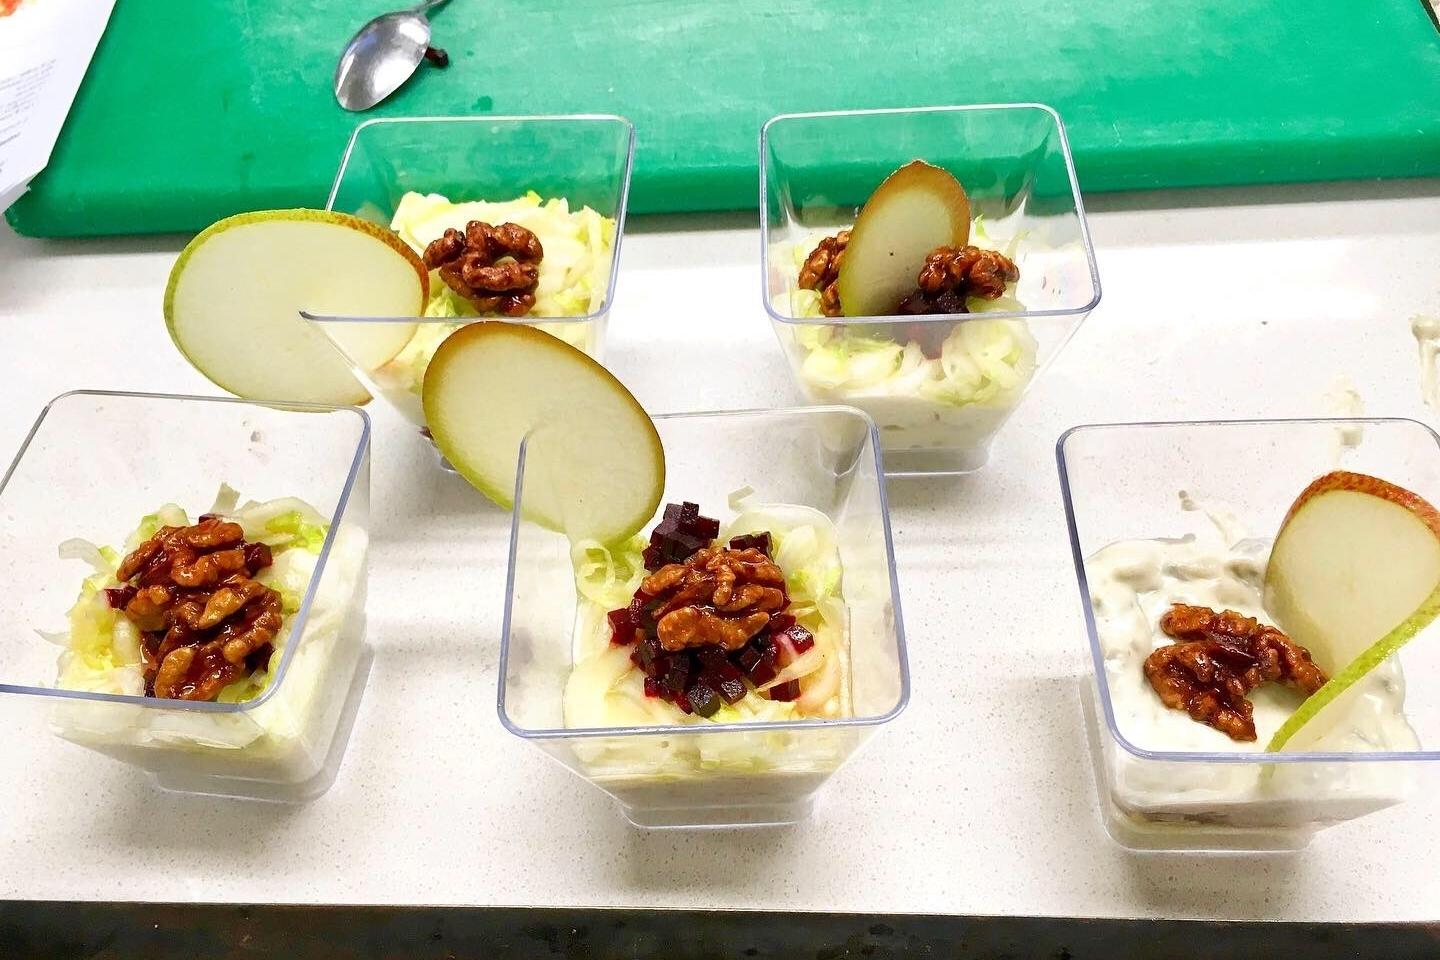 Roquefort cheese, glazed beetroot brunoise, compressed pear and candied walnut